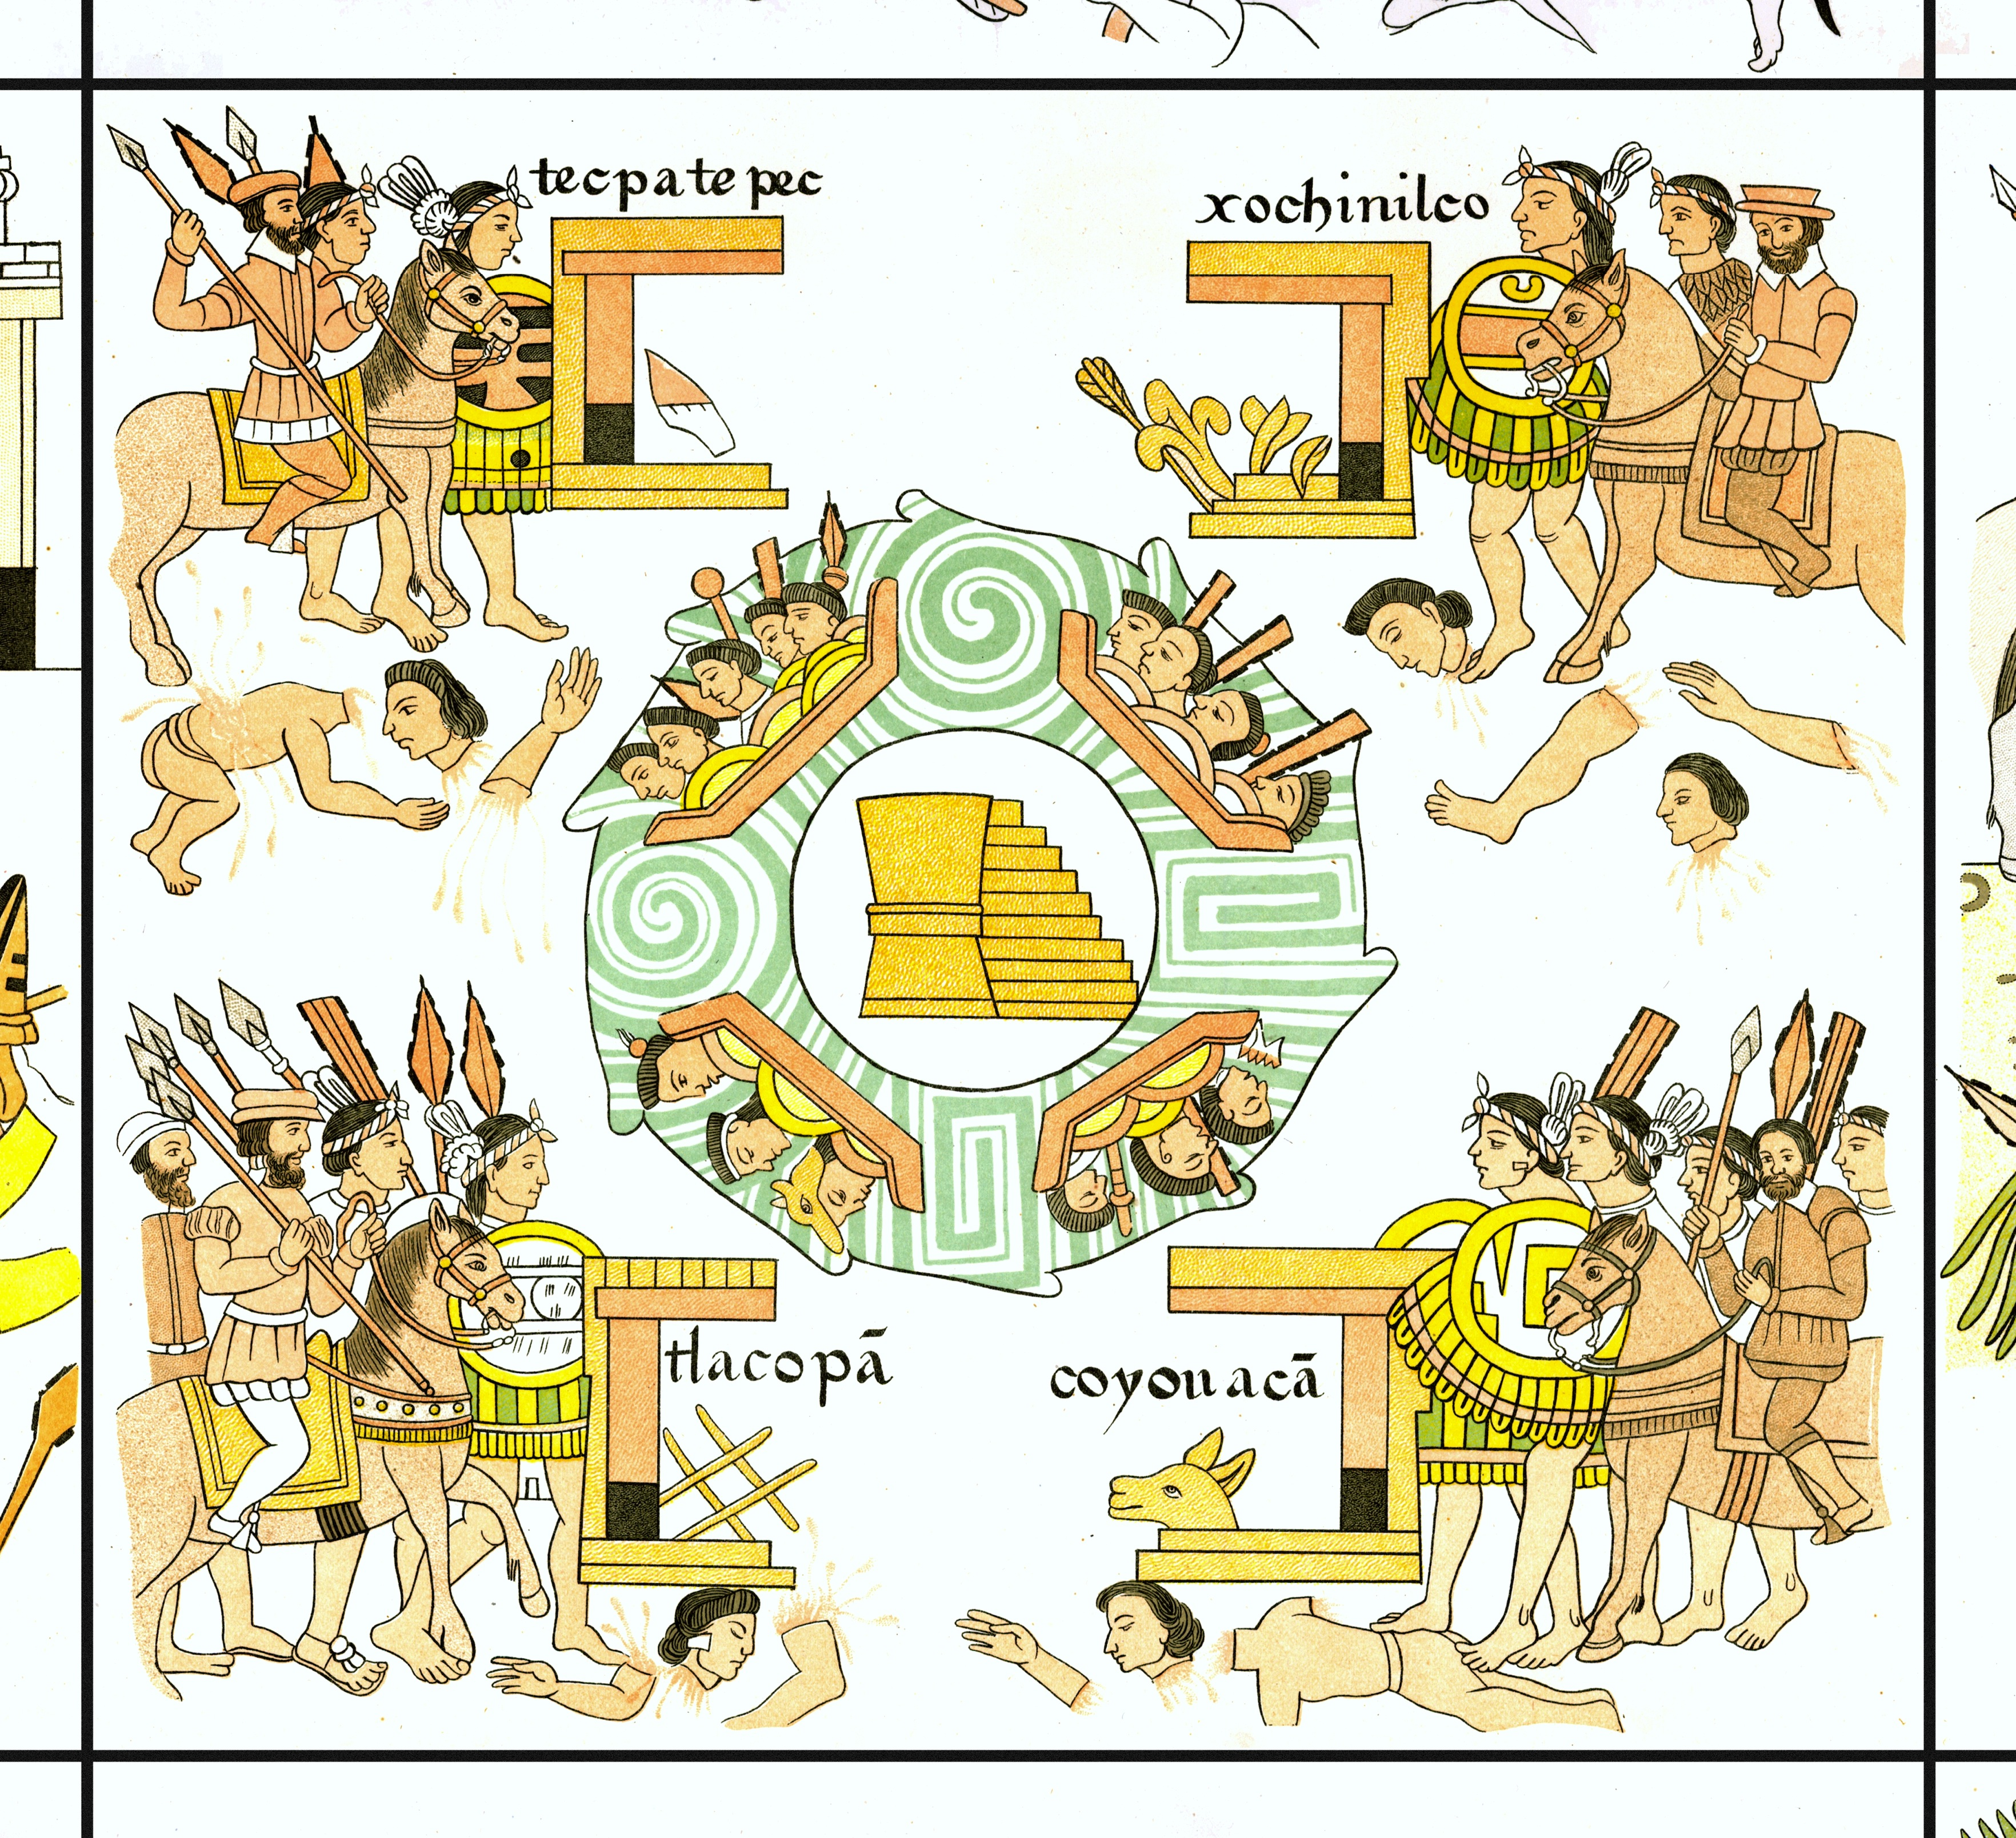 FIGURE 28. Cell 42 of the Lienzo de Tlaxcala: Tenochtitlan in the middle of Lake Texcoco.